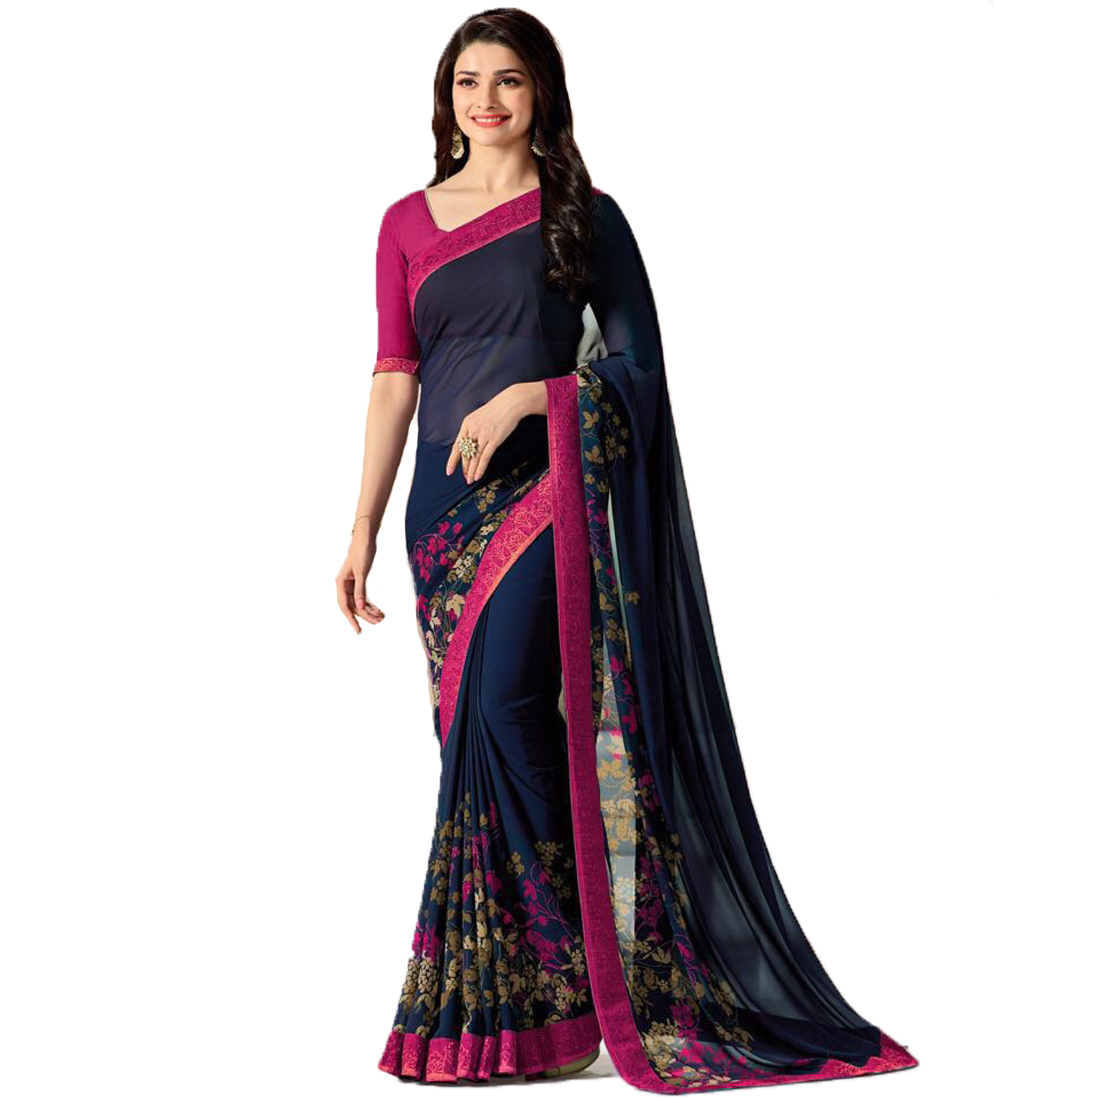 Indian Style Sarees New Arrivals Latest Women's Blue Pink Georgette Printed Saree With Blouse Bollywood Latest Designer